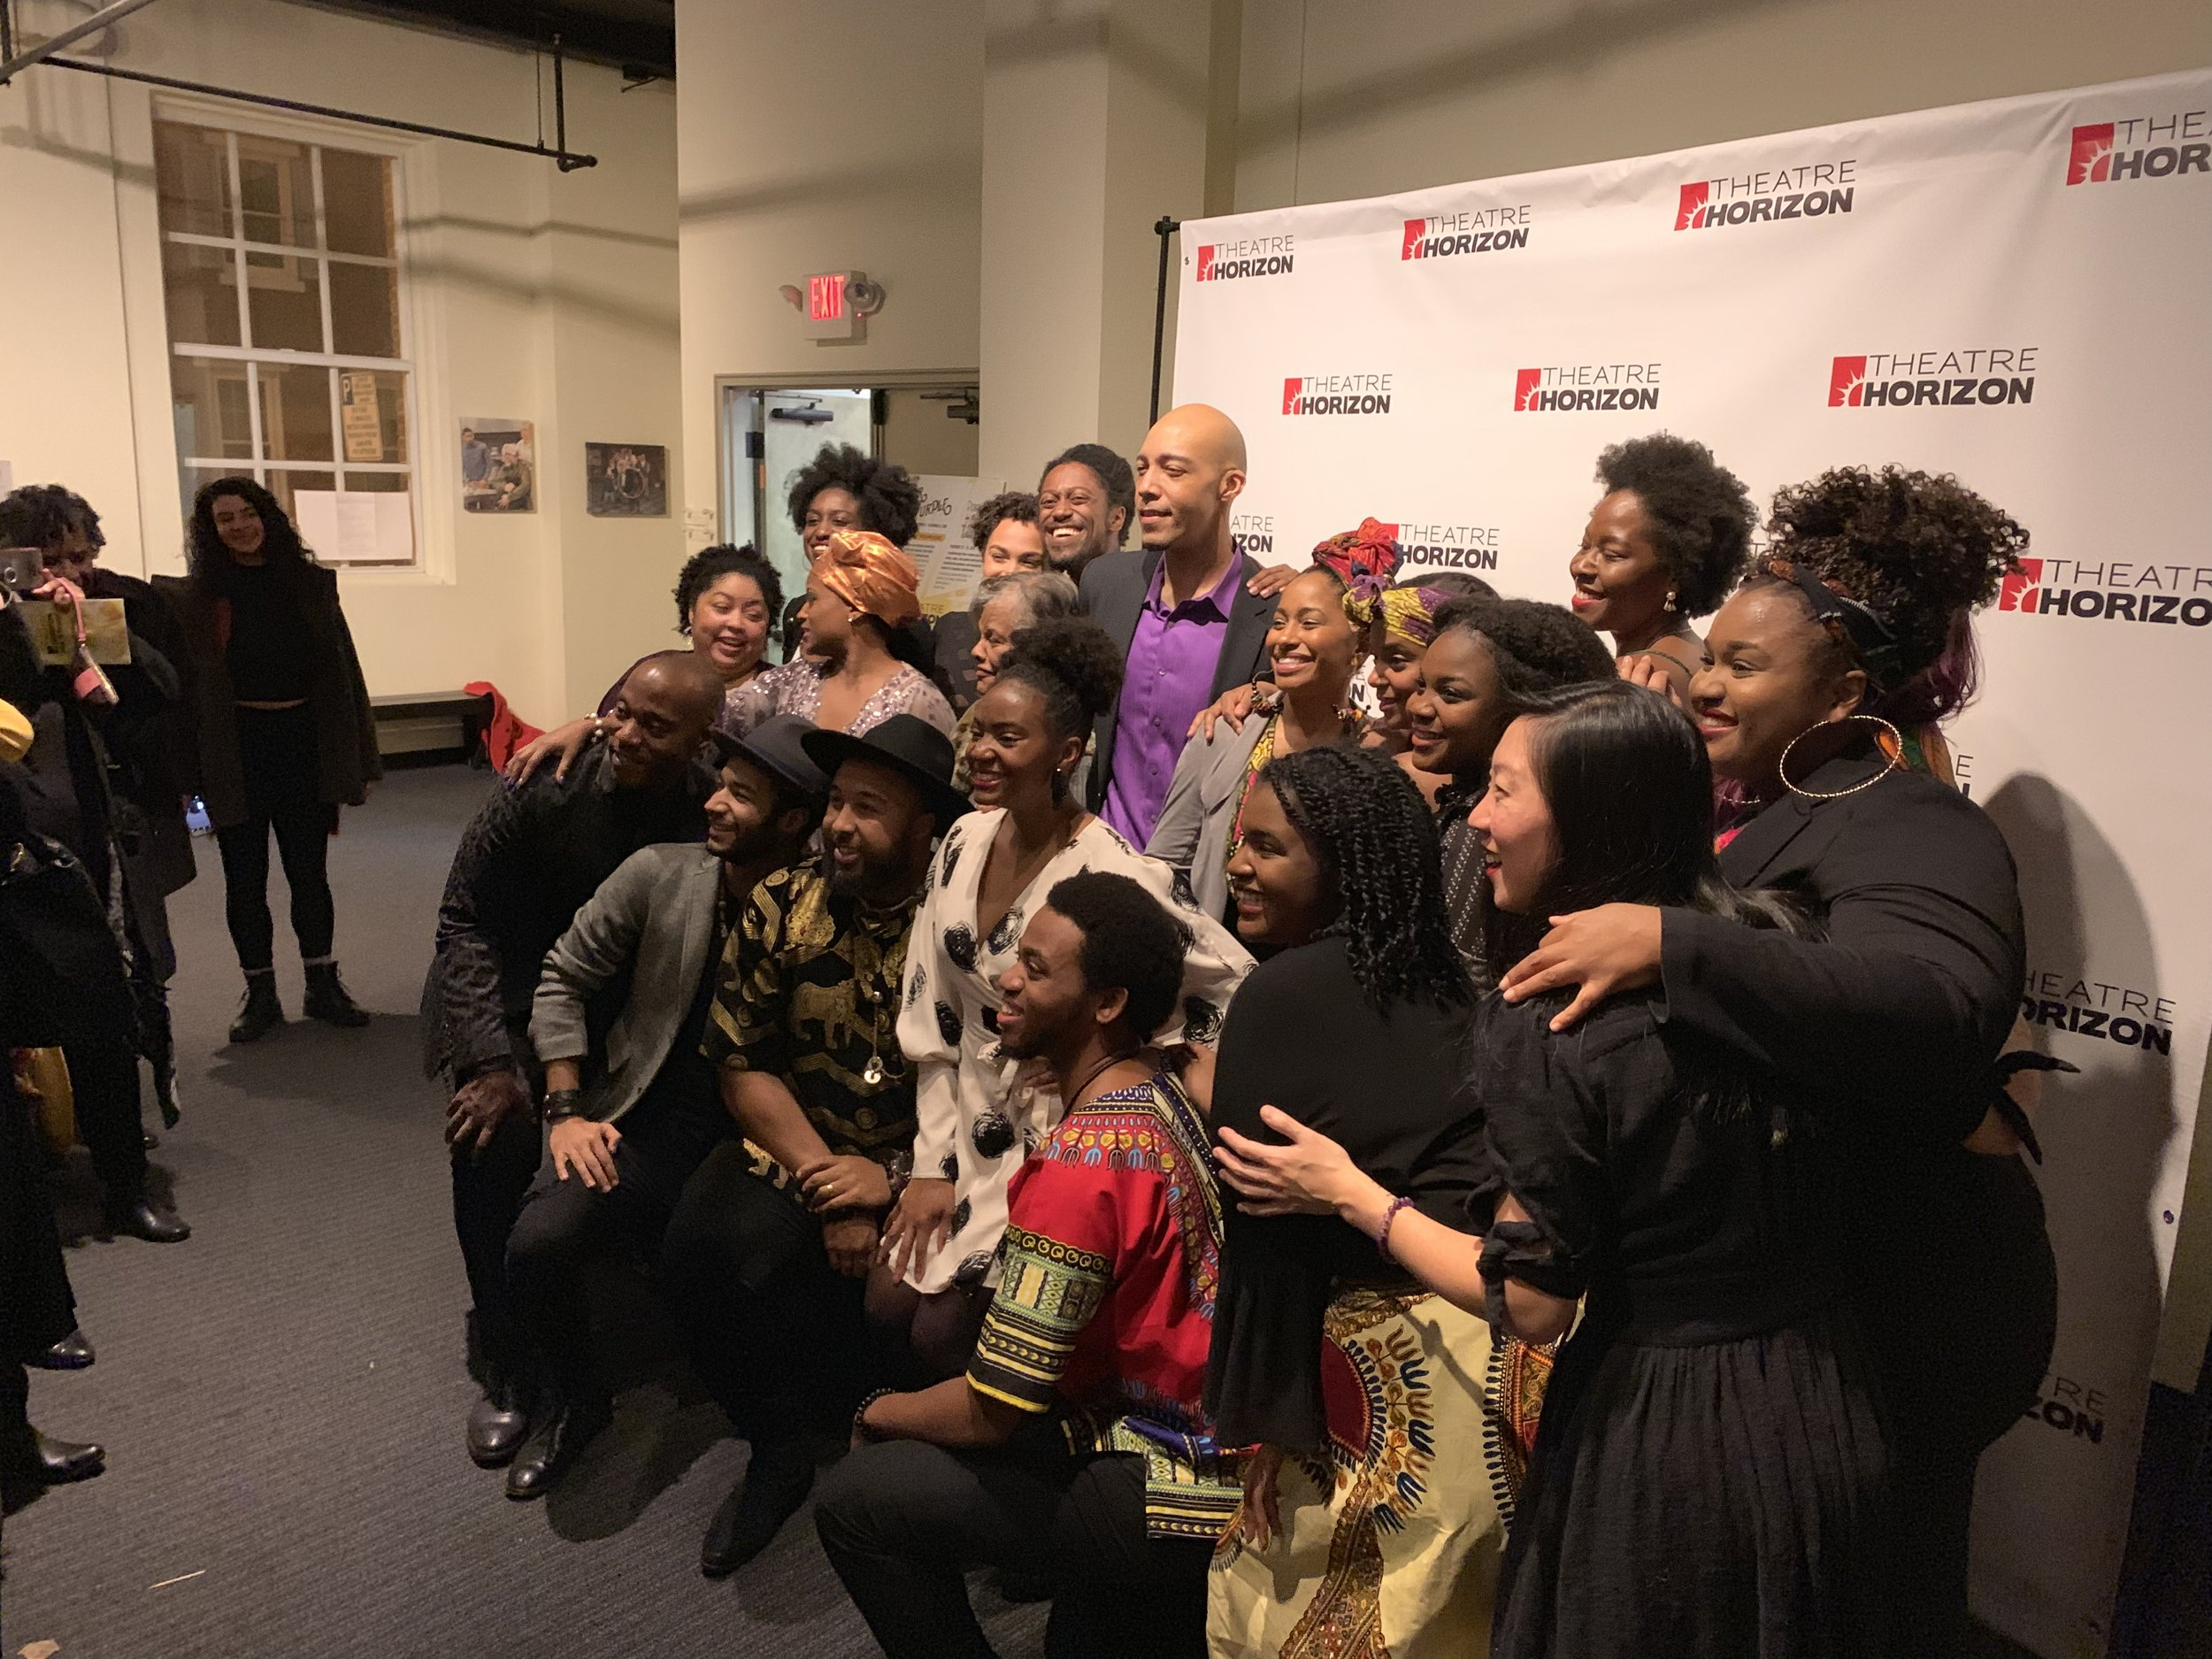 """Jessica M. Johnson in the center of this dynamic cast of color on Opening Night of Theatre Horizon's Regional Premiere of """"The Color Purple"""""""